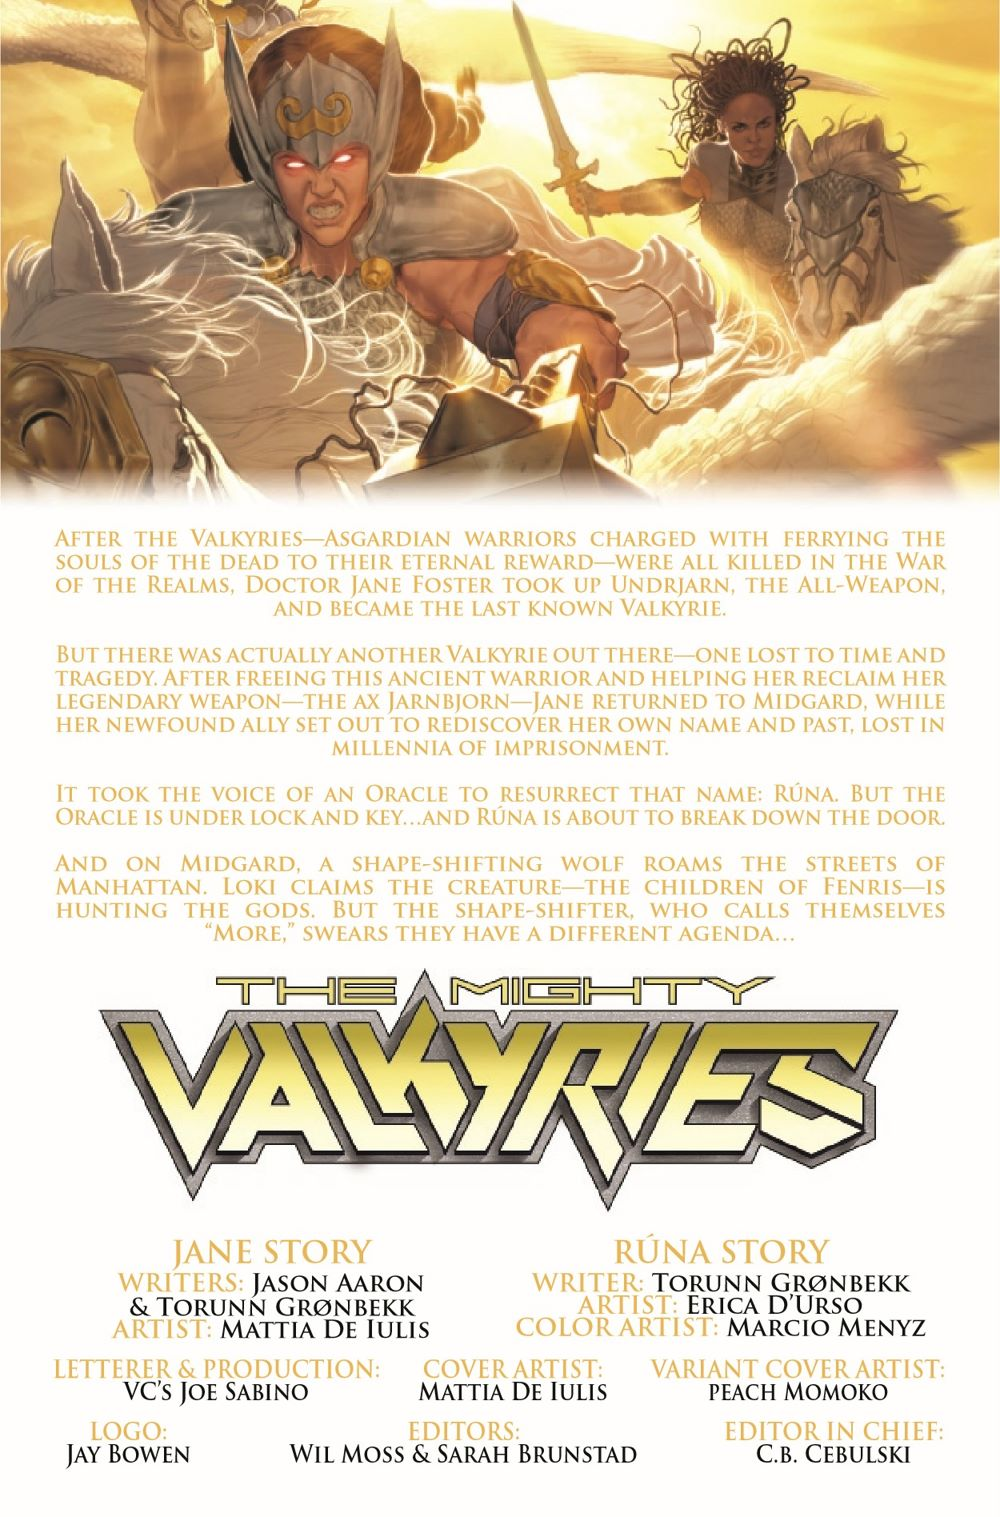 MIGHTYVALKYRIES2021002_Preview-2 ComicList Previews: THE MIGHTY VALKYRIES #2 (OF 5)